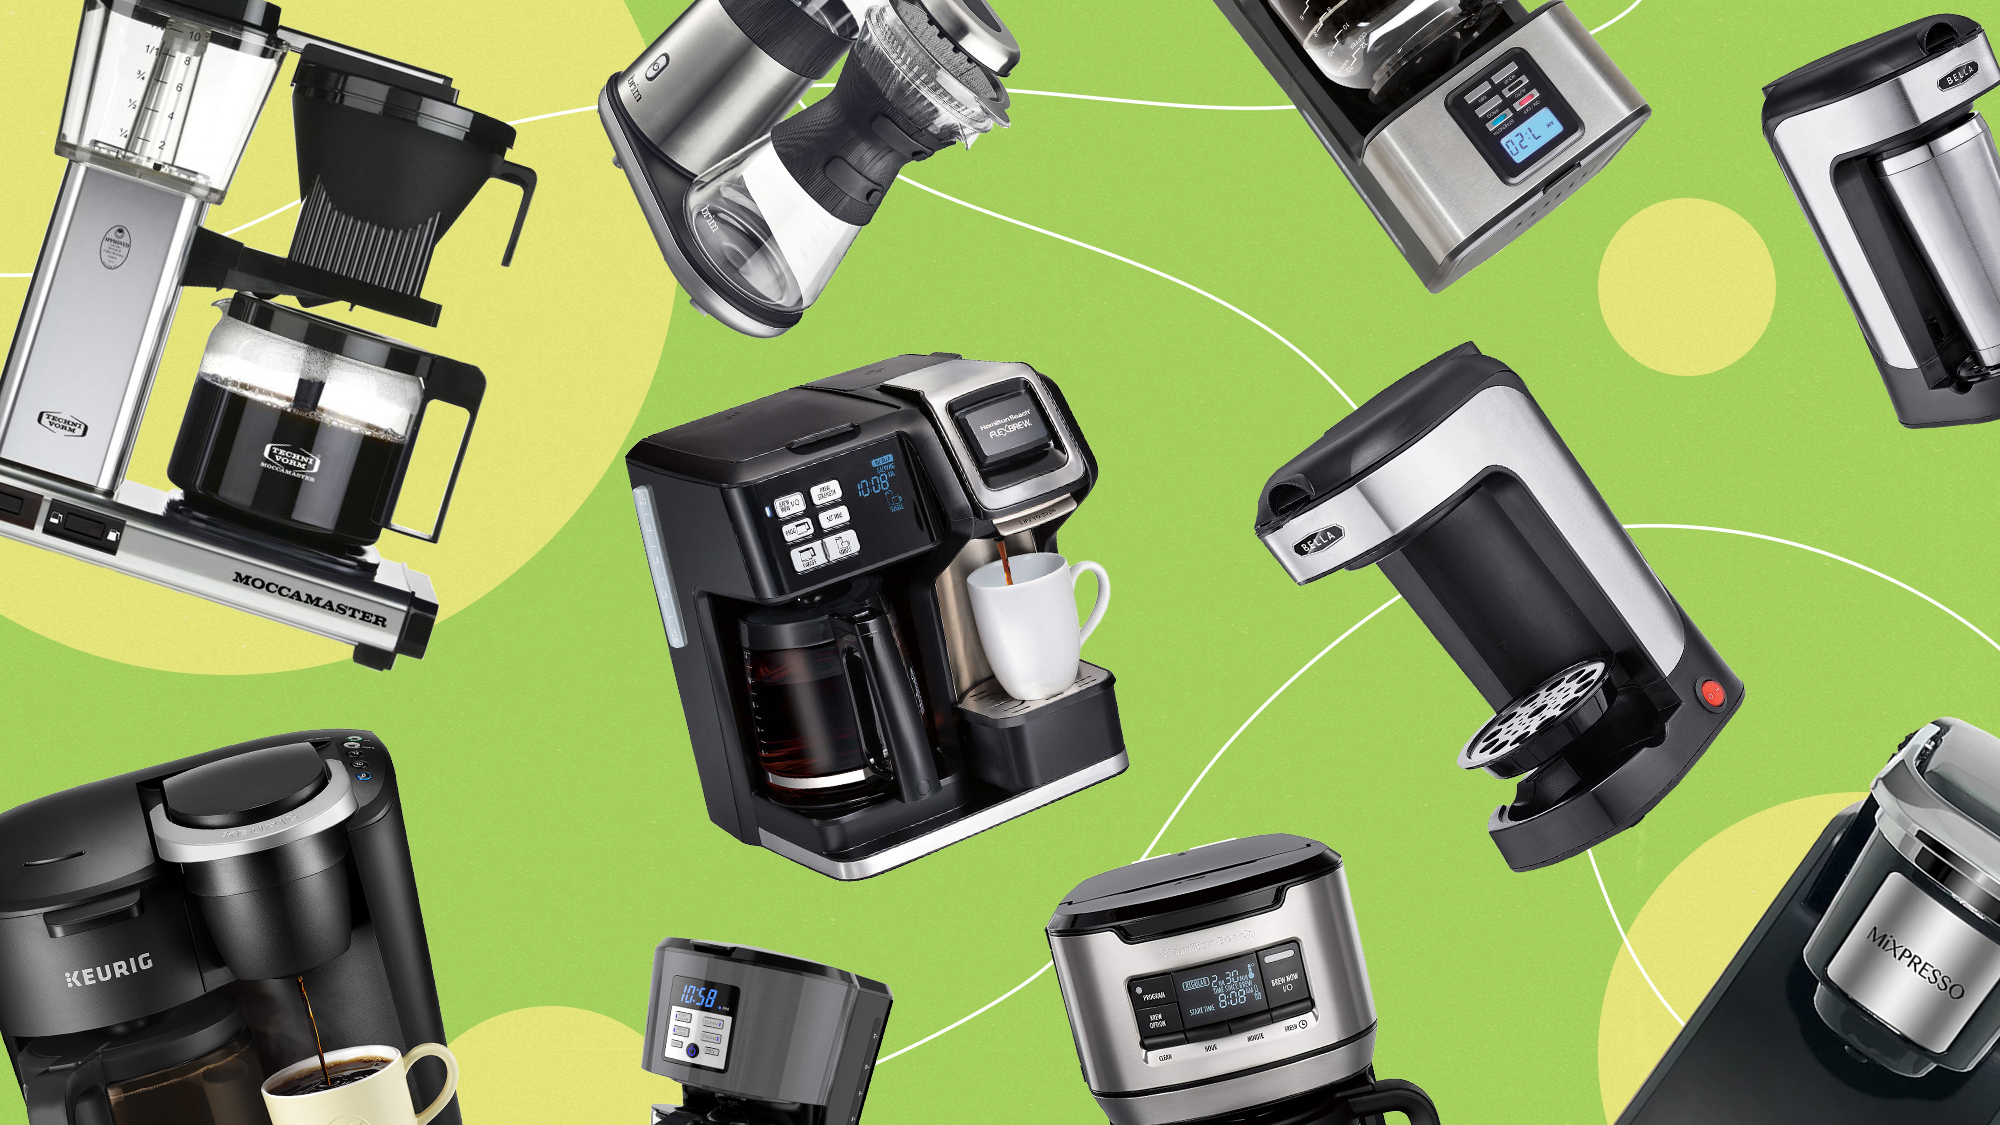 a selection of coffee makers on a designed background